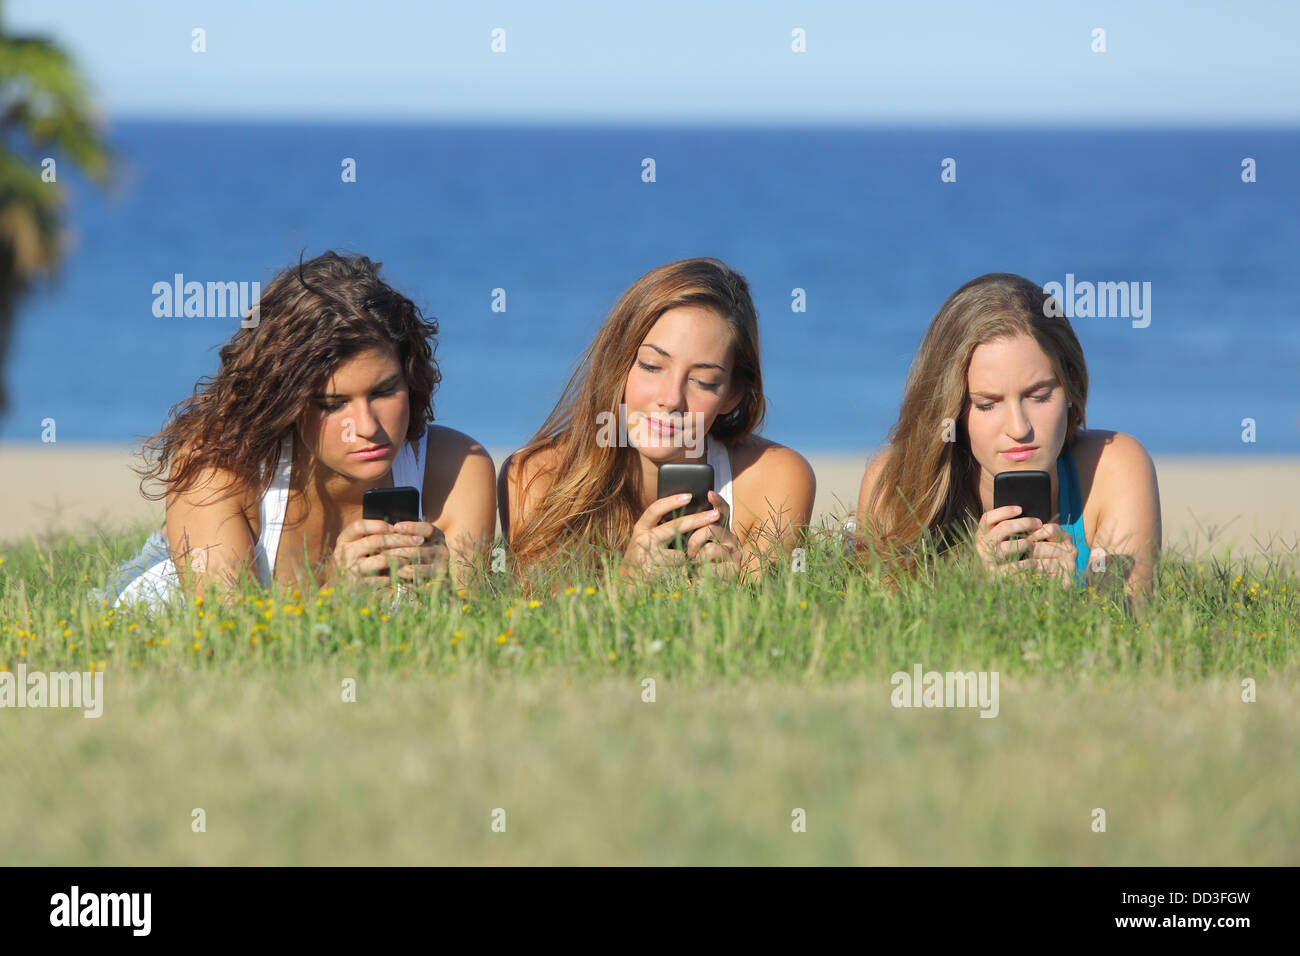 Group of three teenager girls typing on the mobile phone lying on the grass with the sea in the background - Stock Image